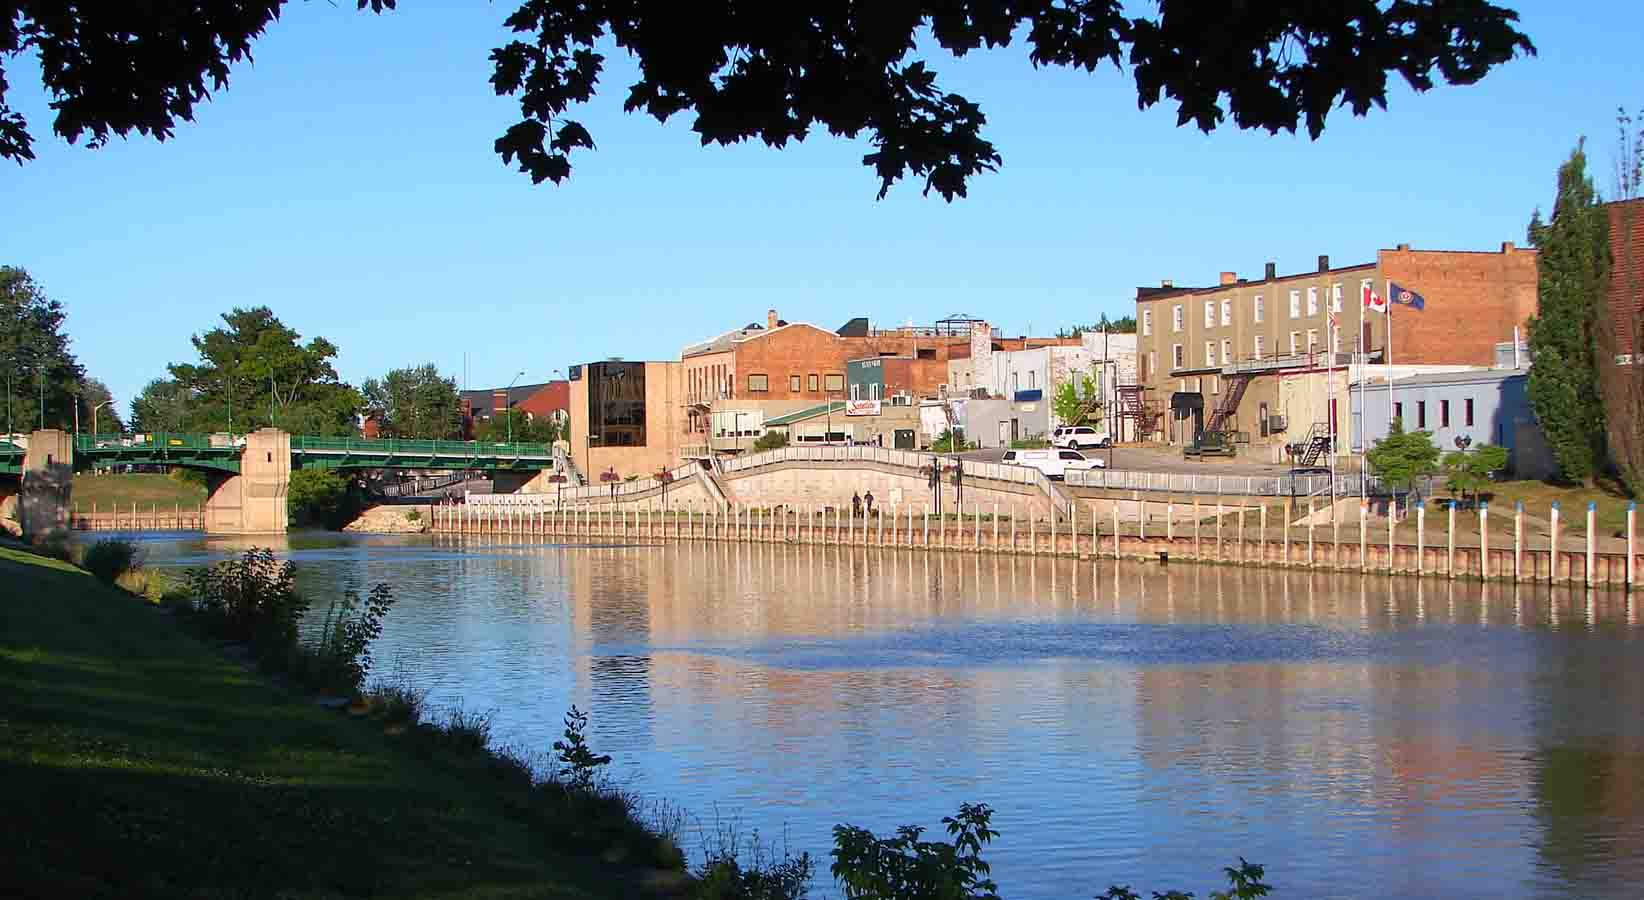 View of buildings along the river at Chatham, Ontario.